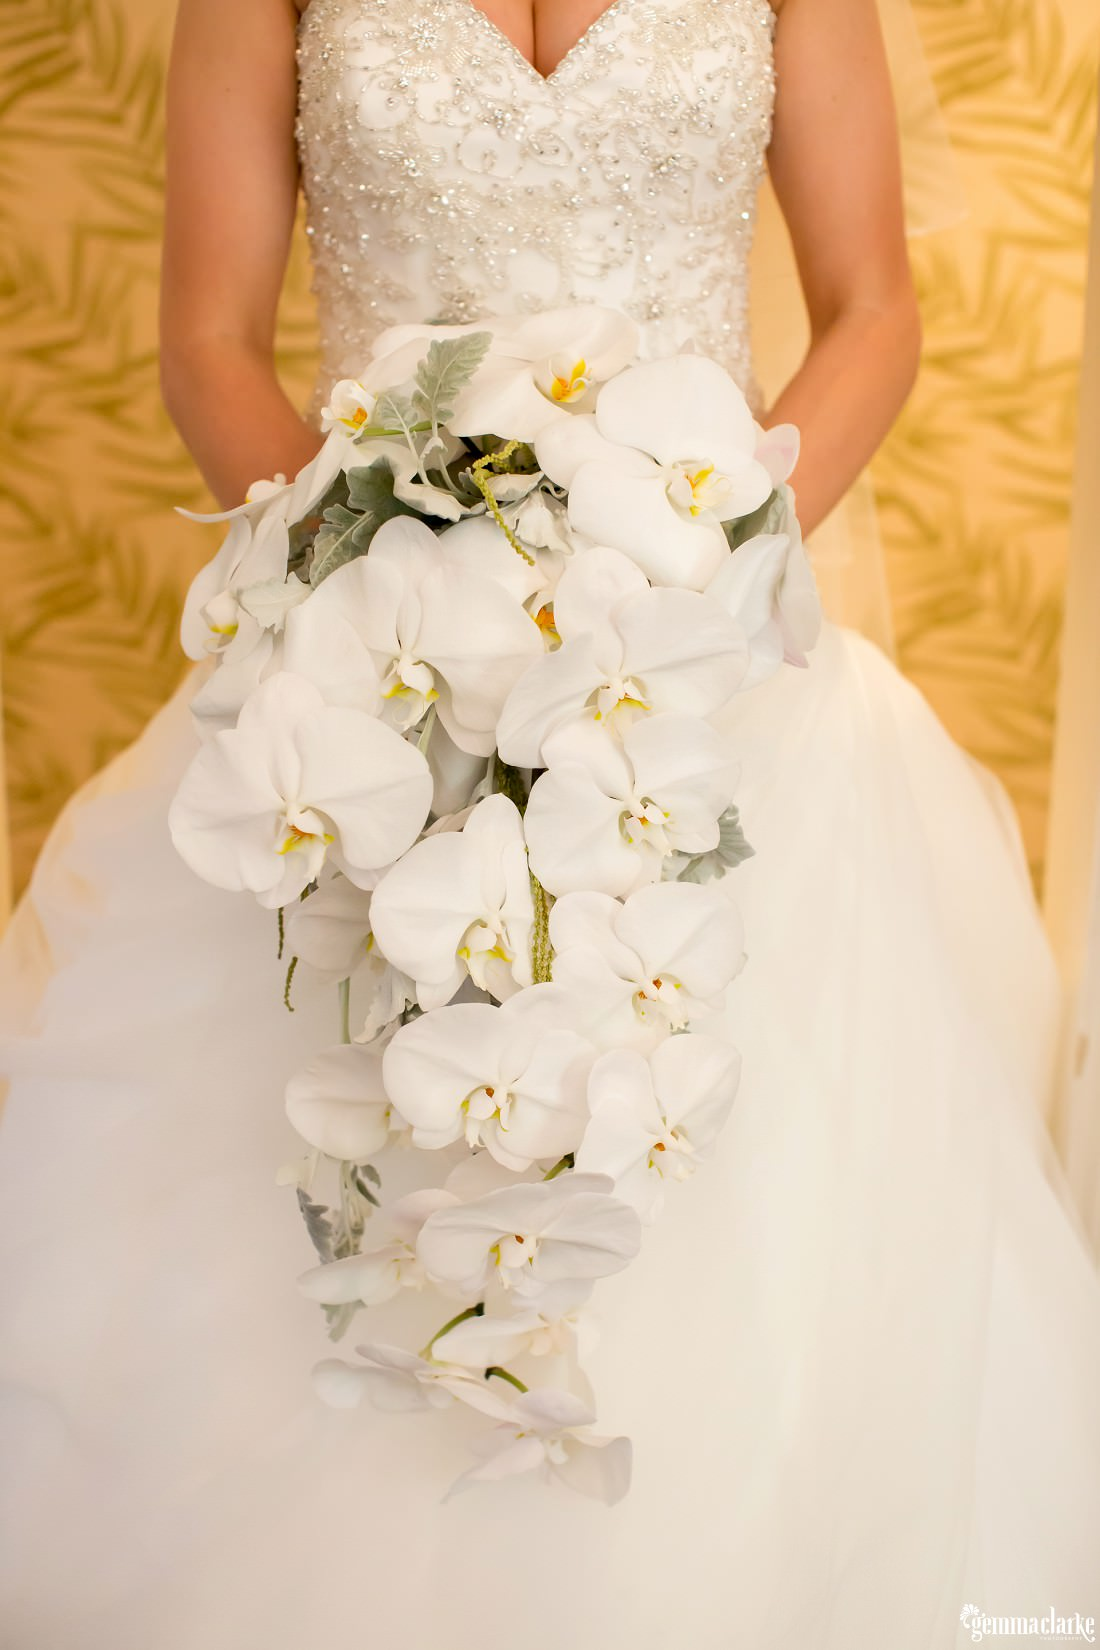 A bridal bouquet of lovely white orchids - Maroubra Beach Wedding